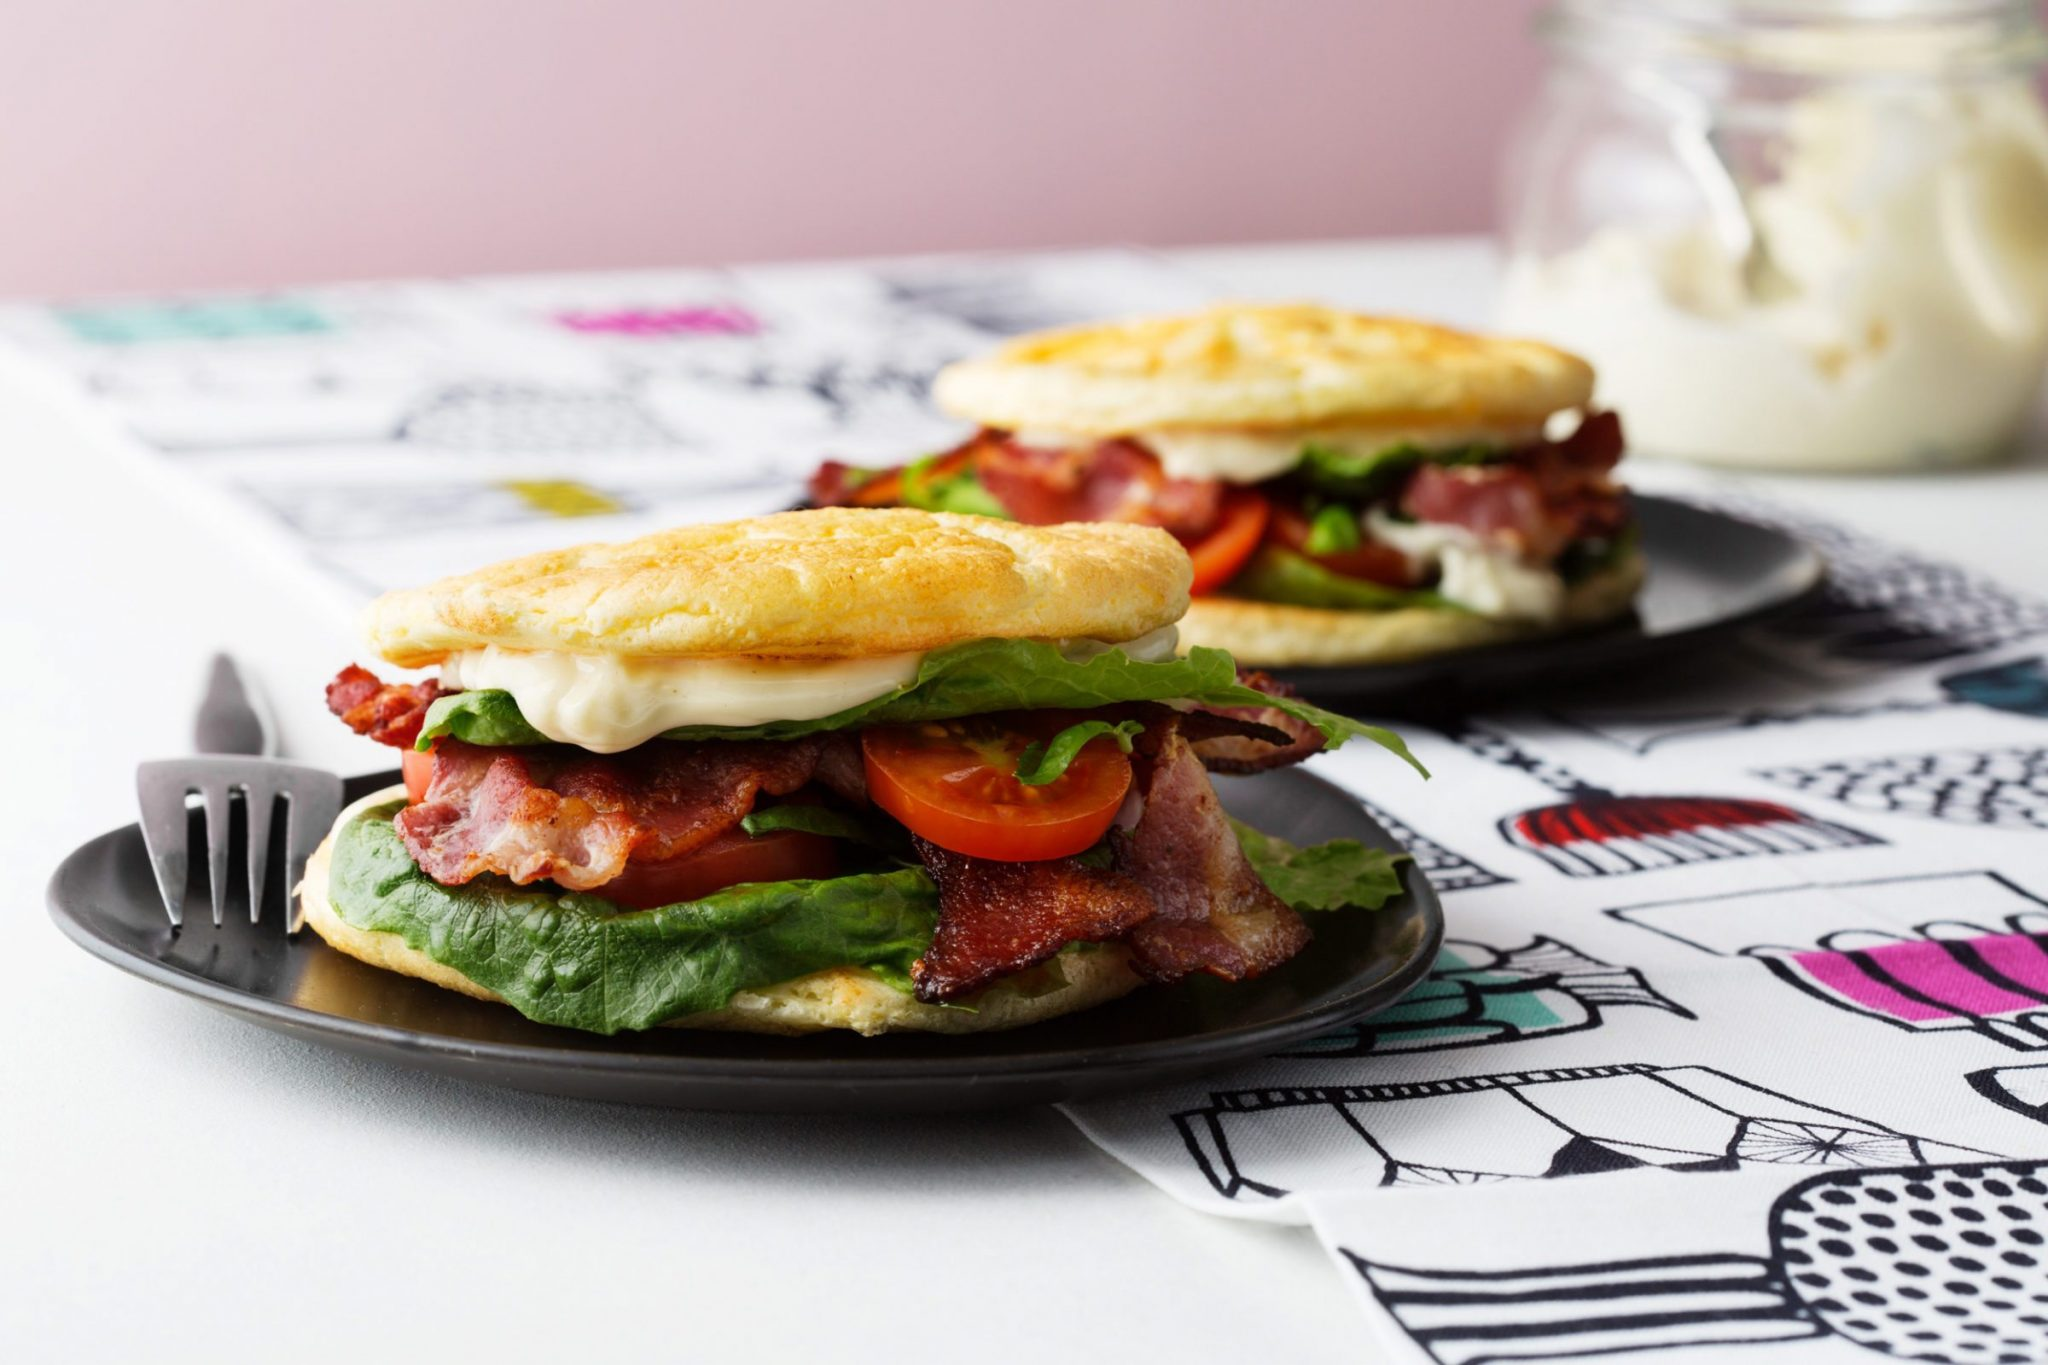 Bacon Lettuce and Tomato with Oopsie Bread